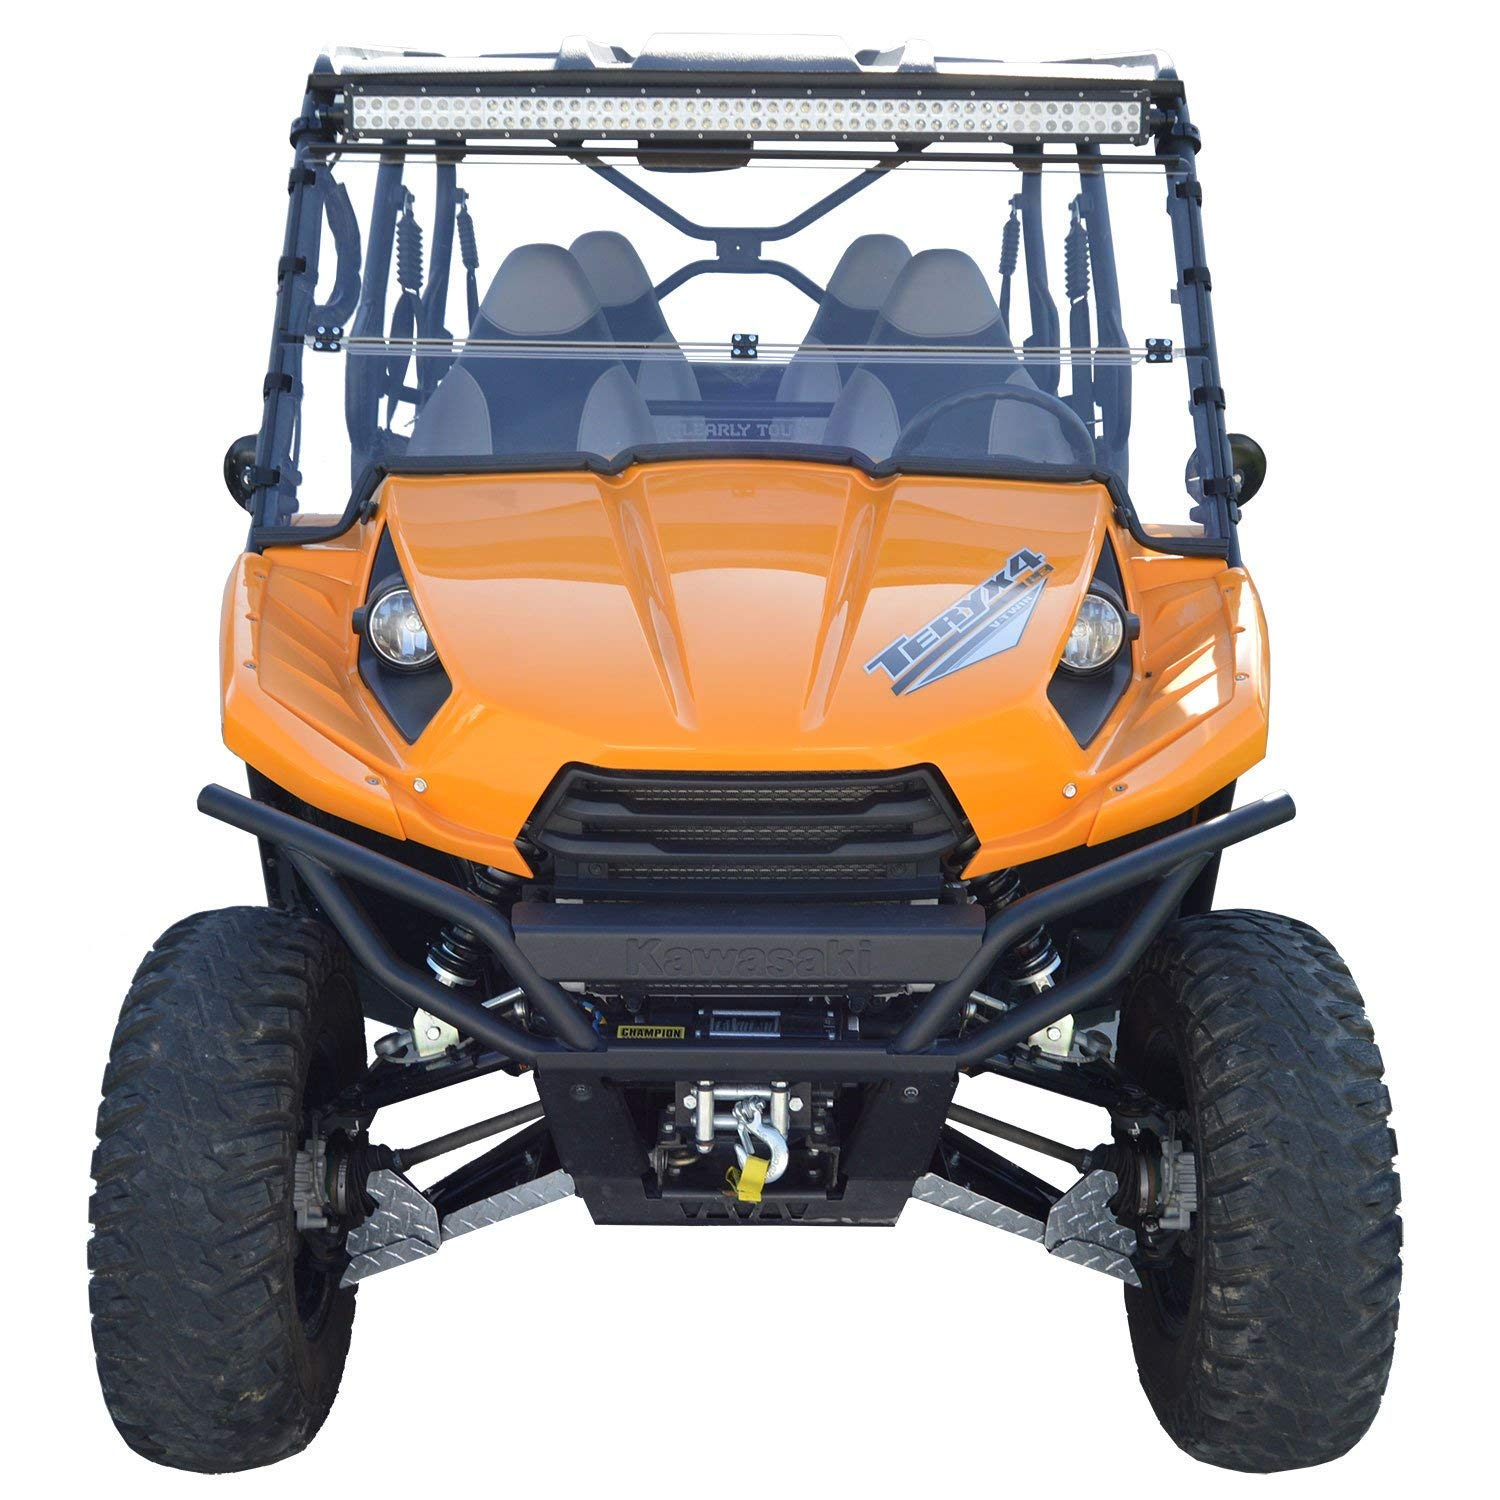 12-14 Full Folding Kawasaki Teryx 4 Windshield SCRATCH RESISTANT The Ultimate in Side By Side Versatility!Premium polycabonate w//Scratch Resistant Hard CoatMade in America!!